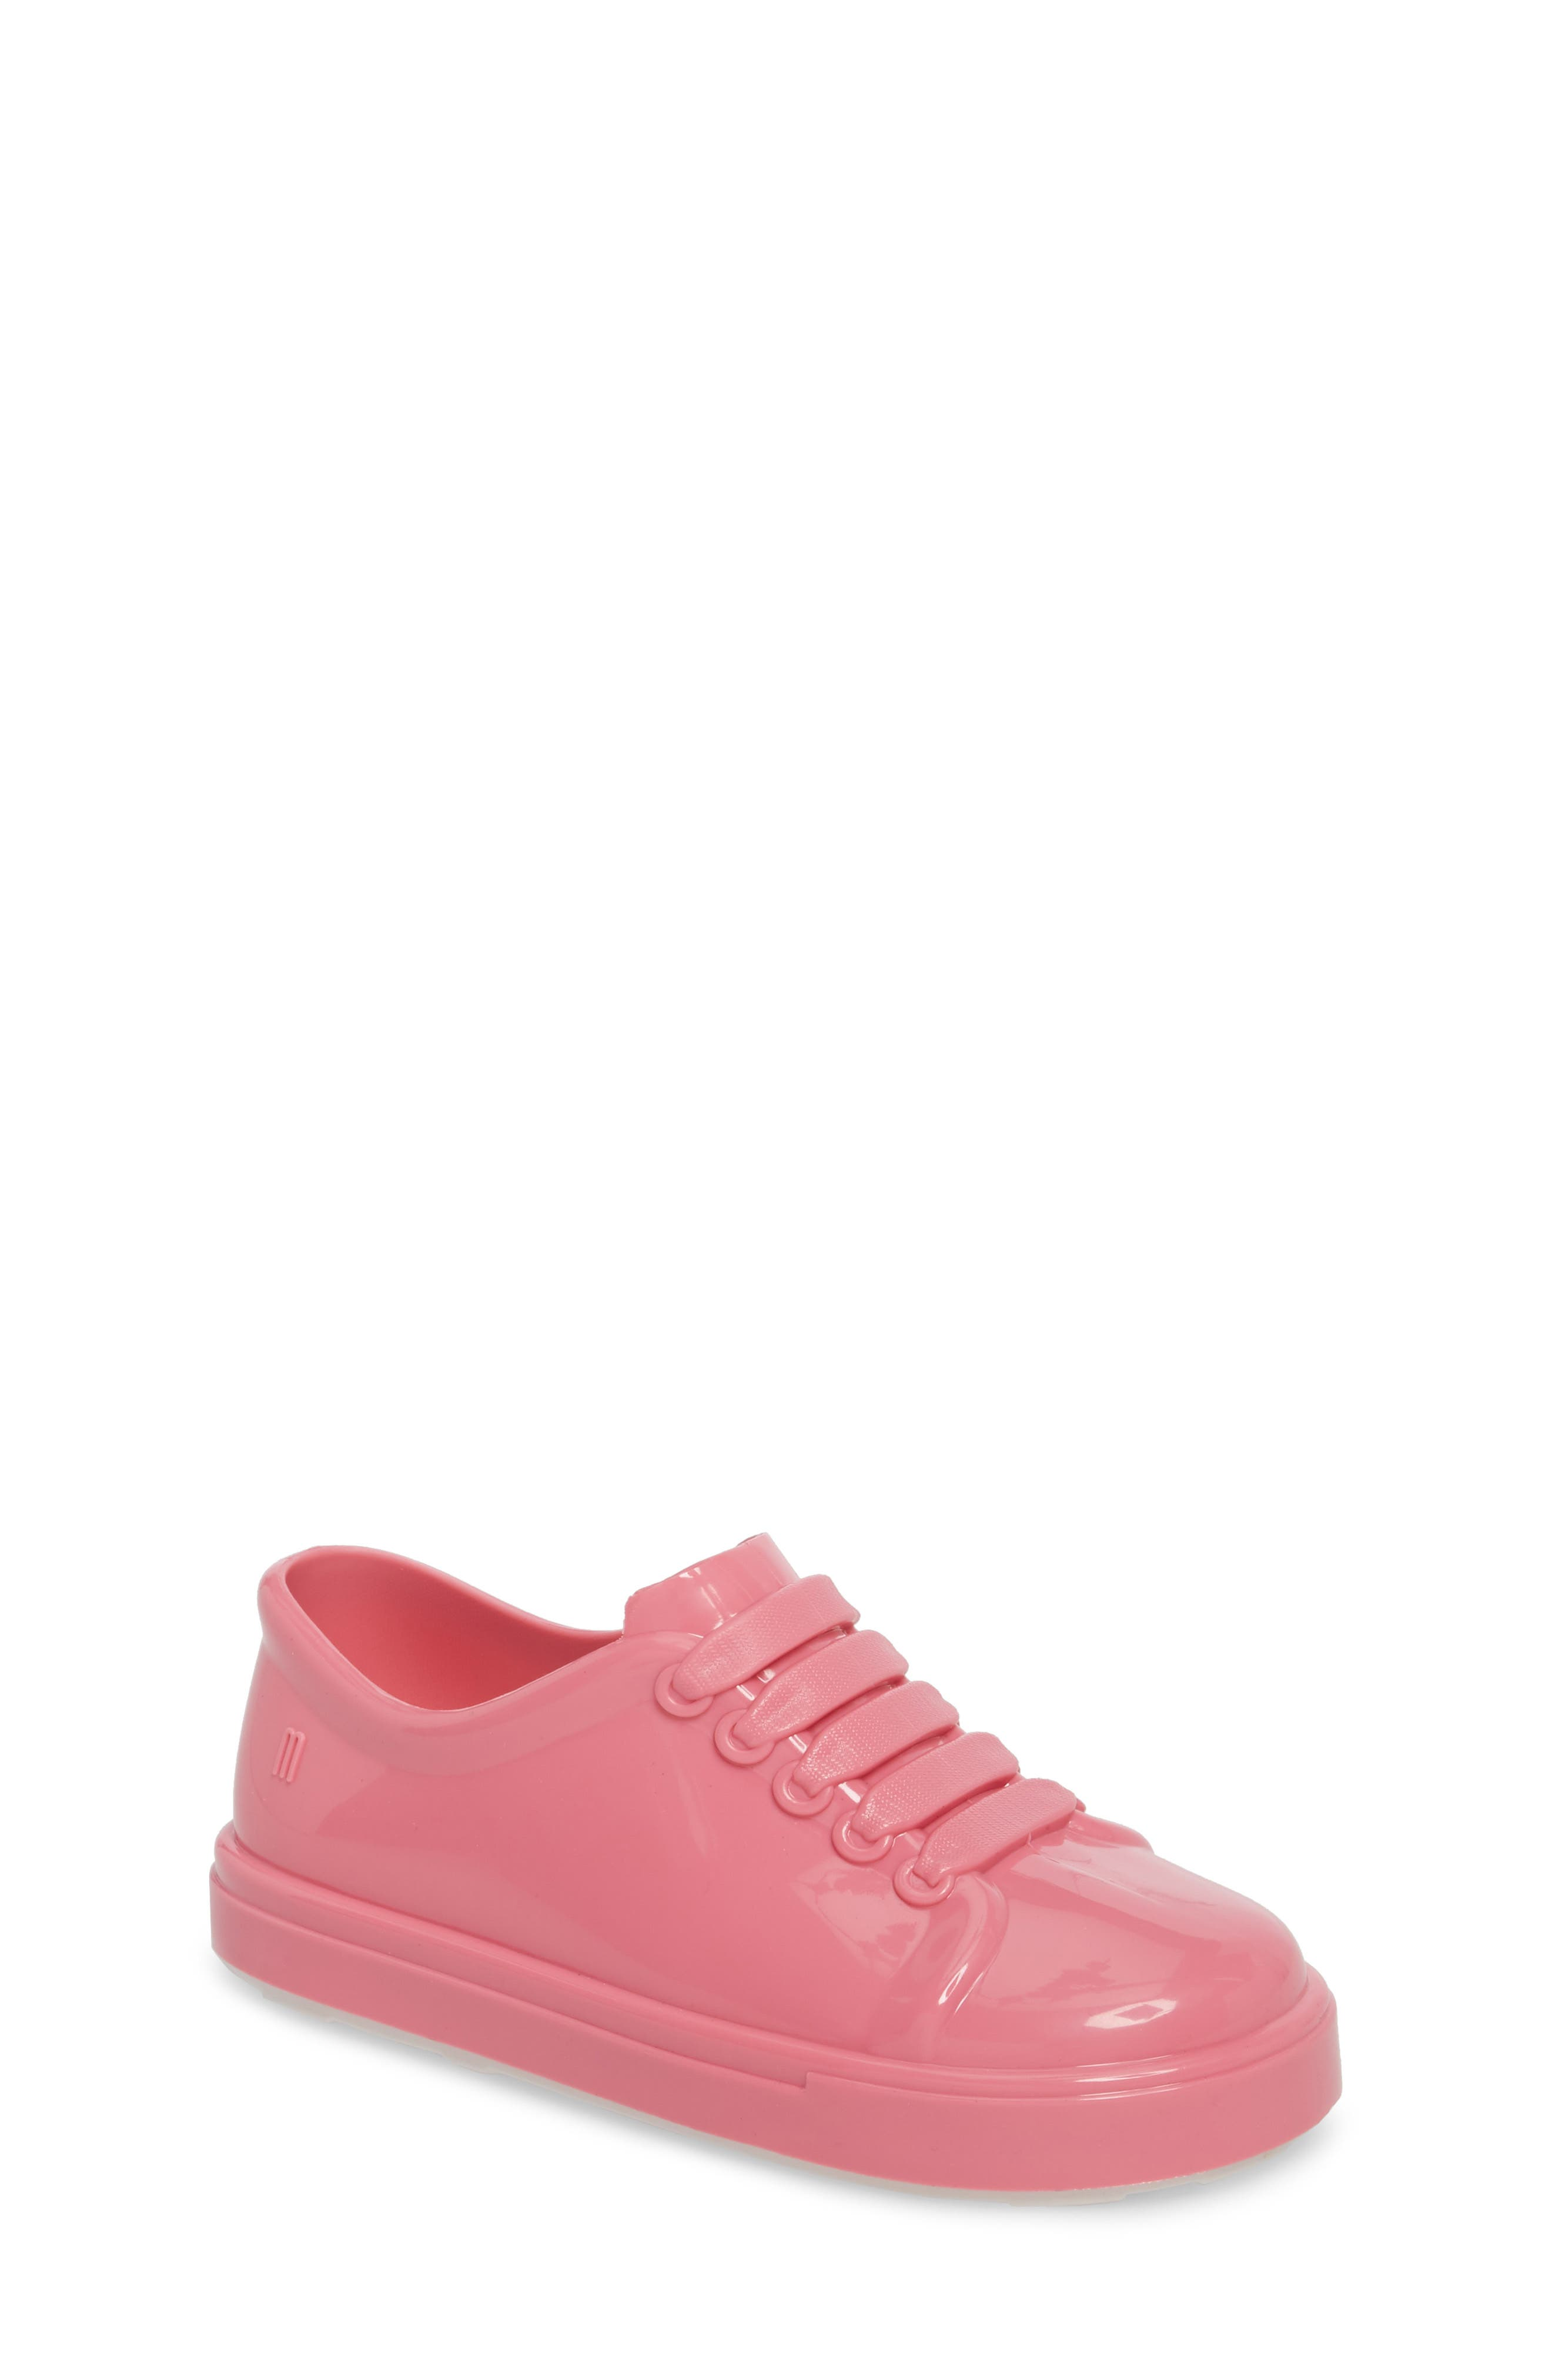 Be Slip-On Sneaker,                         Main,                         color, Pink Candy